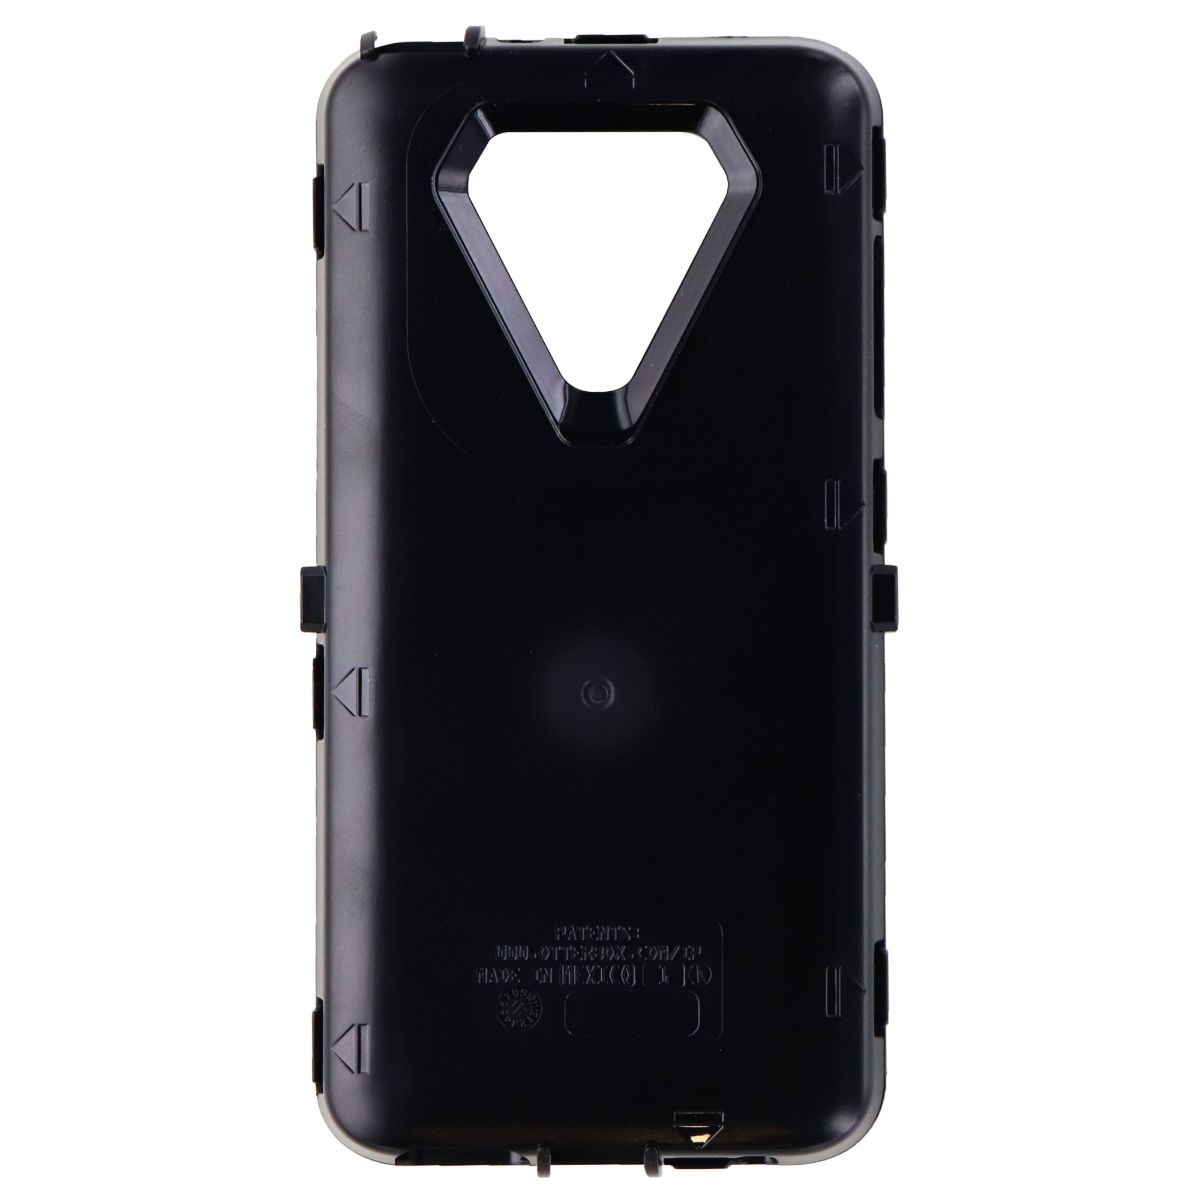 Replacement Inner Shell for LG G6 OtterBox Defender Series Phone Cases - Black